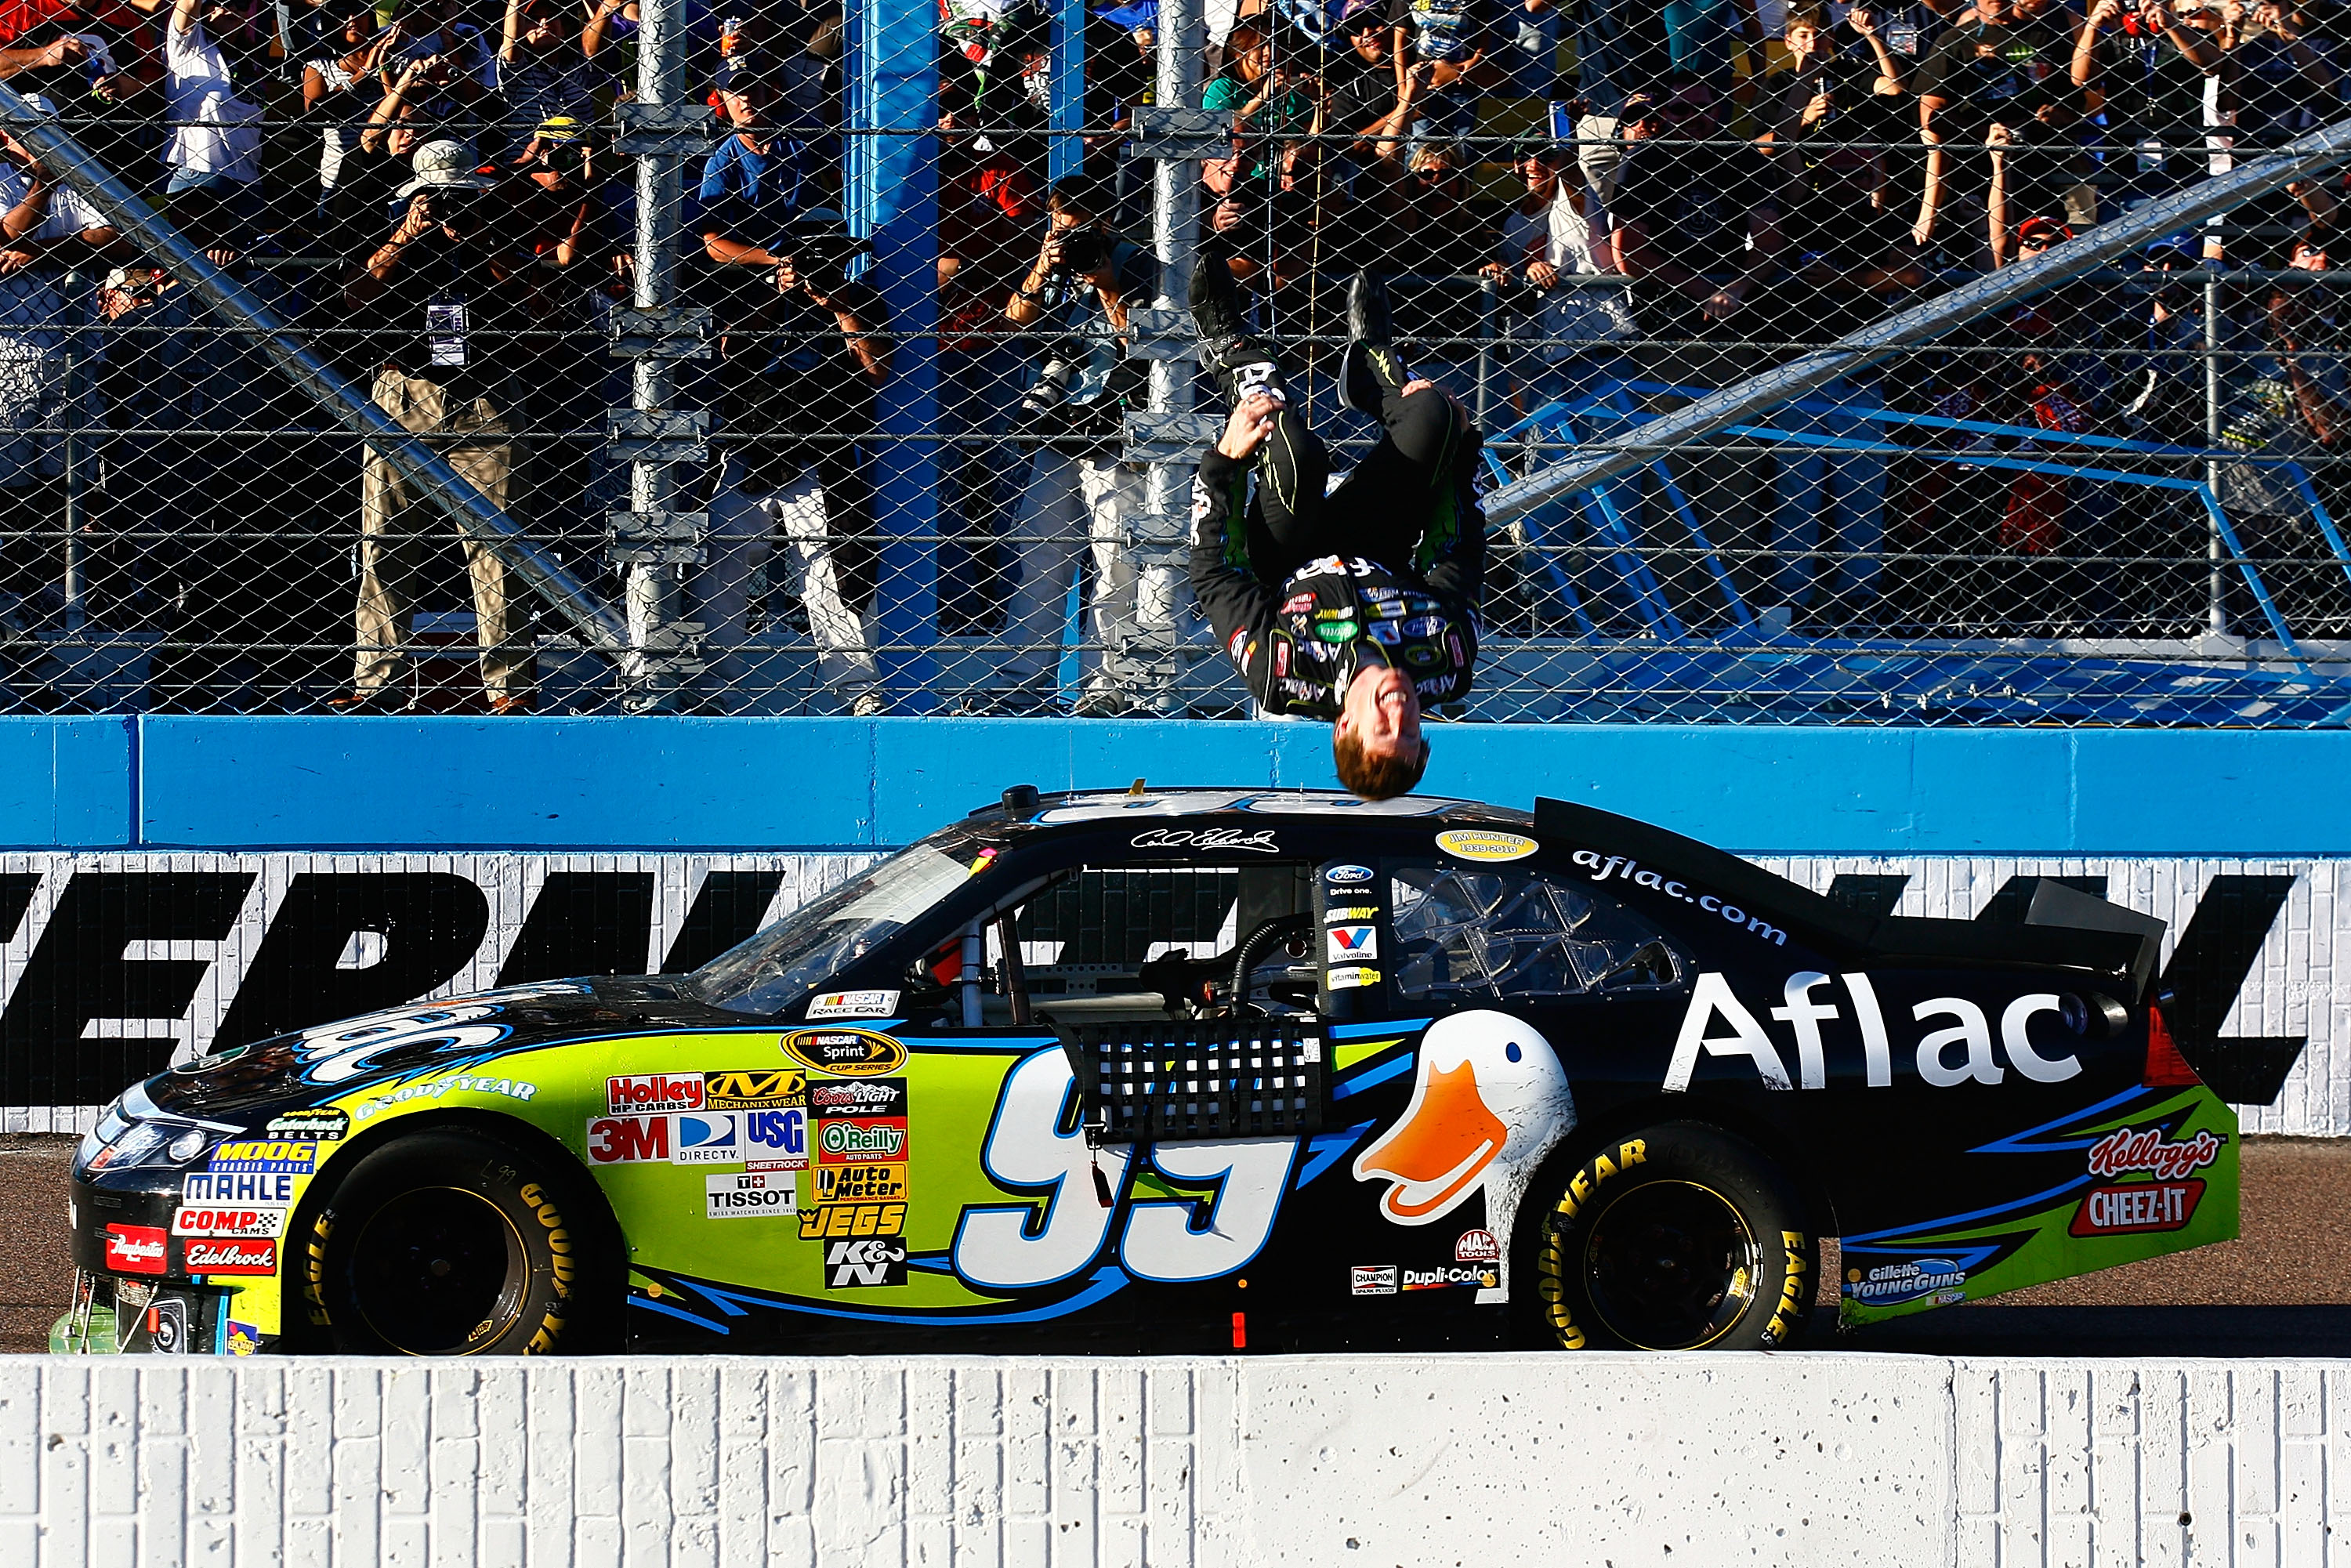 AVONDALE, AZ - NOVEMBER 14:  Carl Edwards, driver of the #99 Aflac Ford, performs a backflip after winning the NASCAR Sprint Cup Series Kobalt Tools 500 at Phoenix International Raceway on November 14, 2010 in Avondale, Arizona.  (Photo by Jason Smith/Get